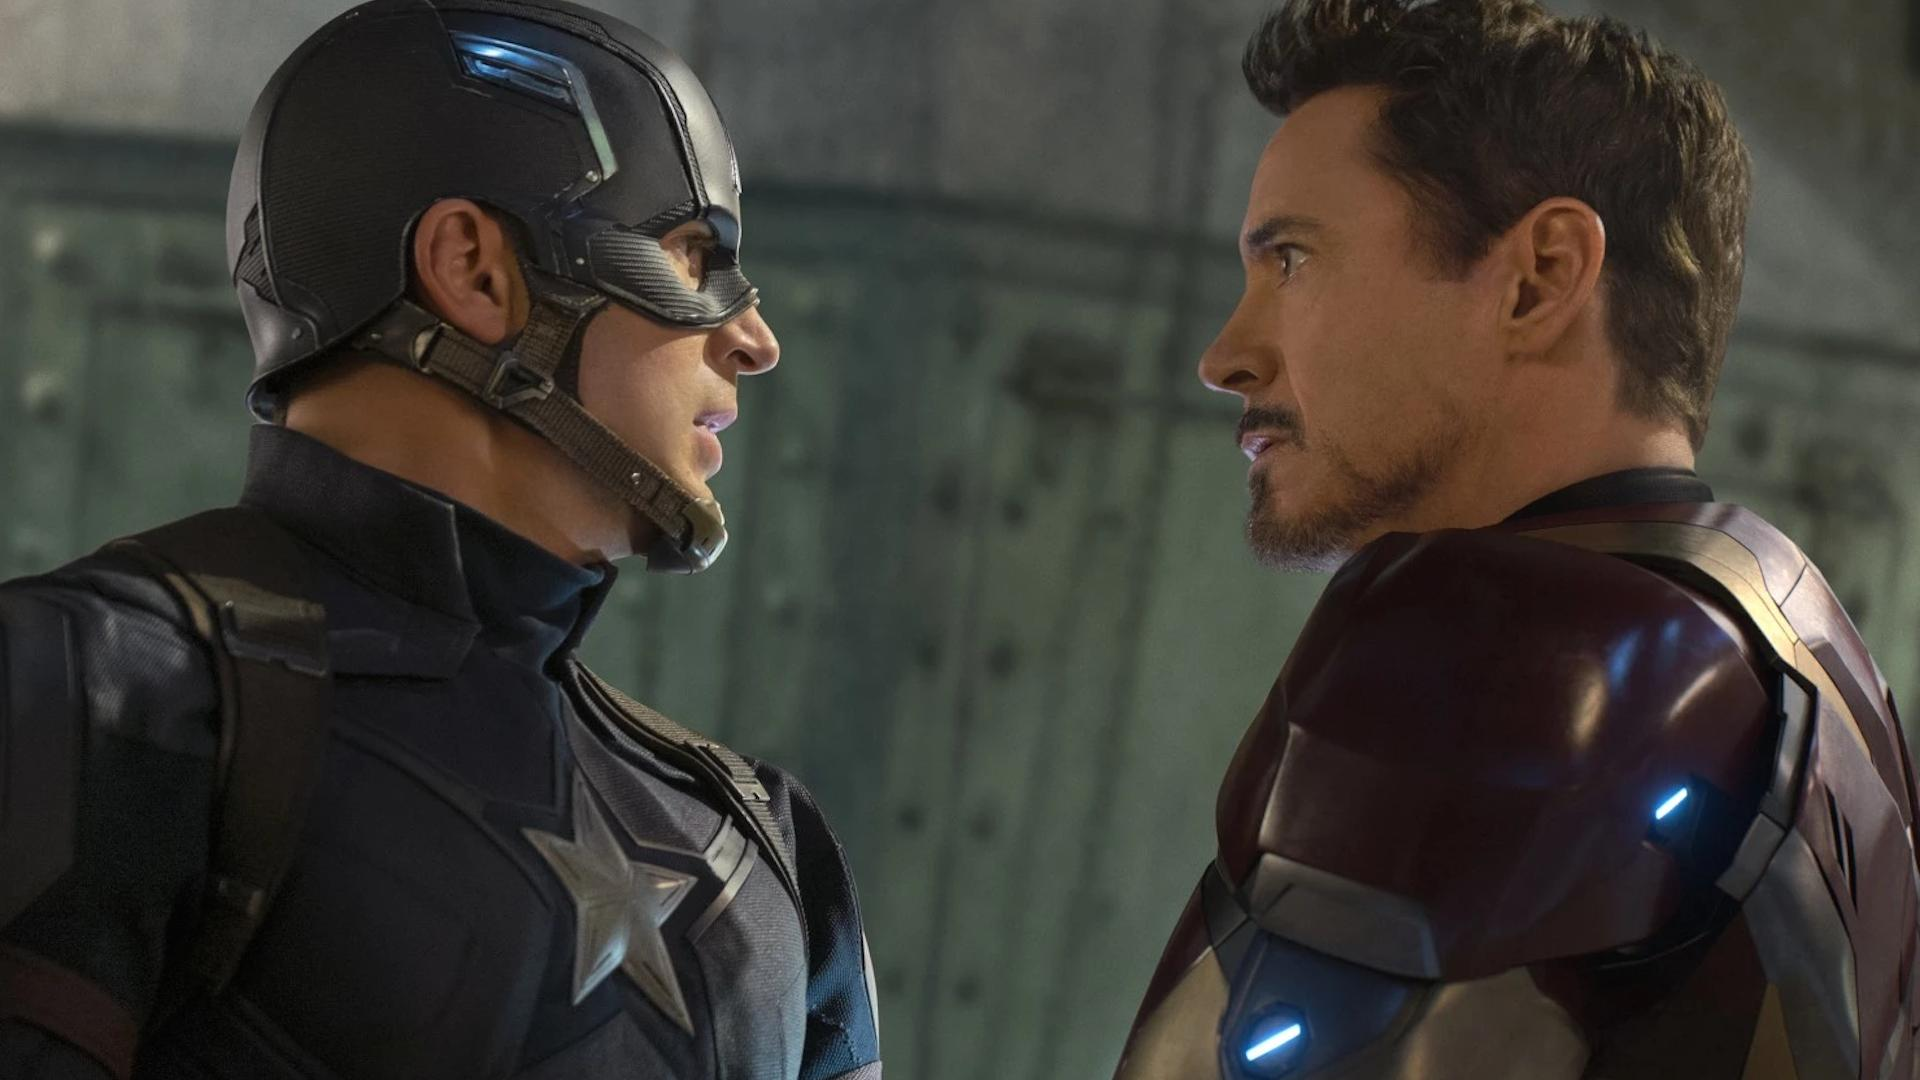 How 'Captain America' is just one piece of Disney's plan to reinvent entertainment